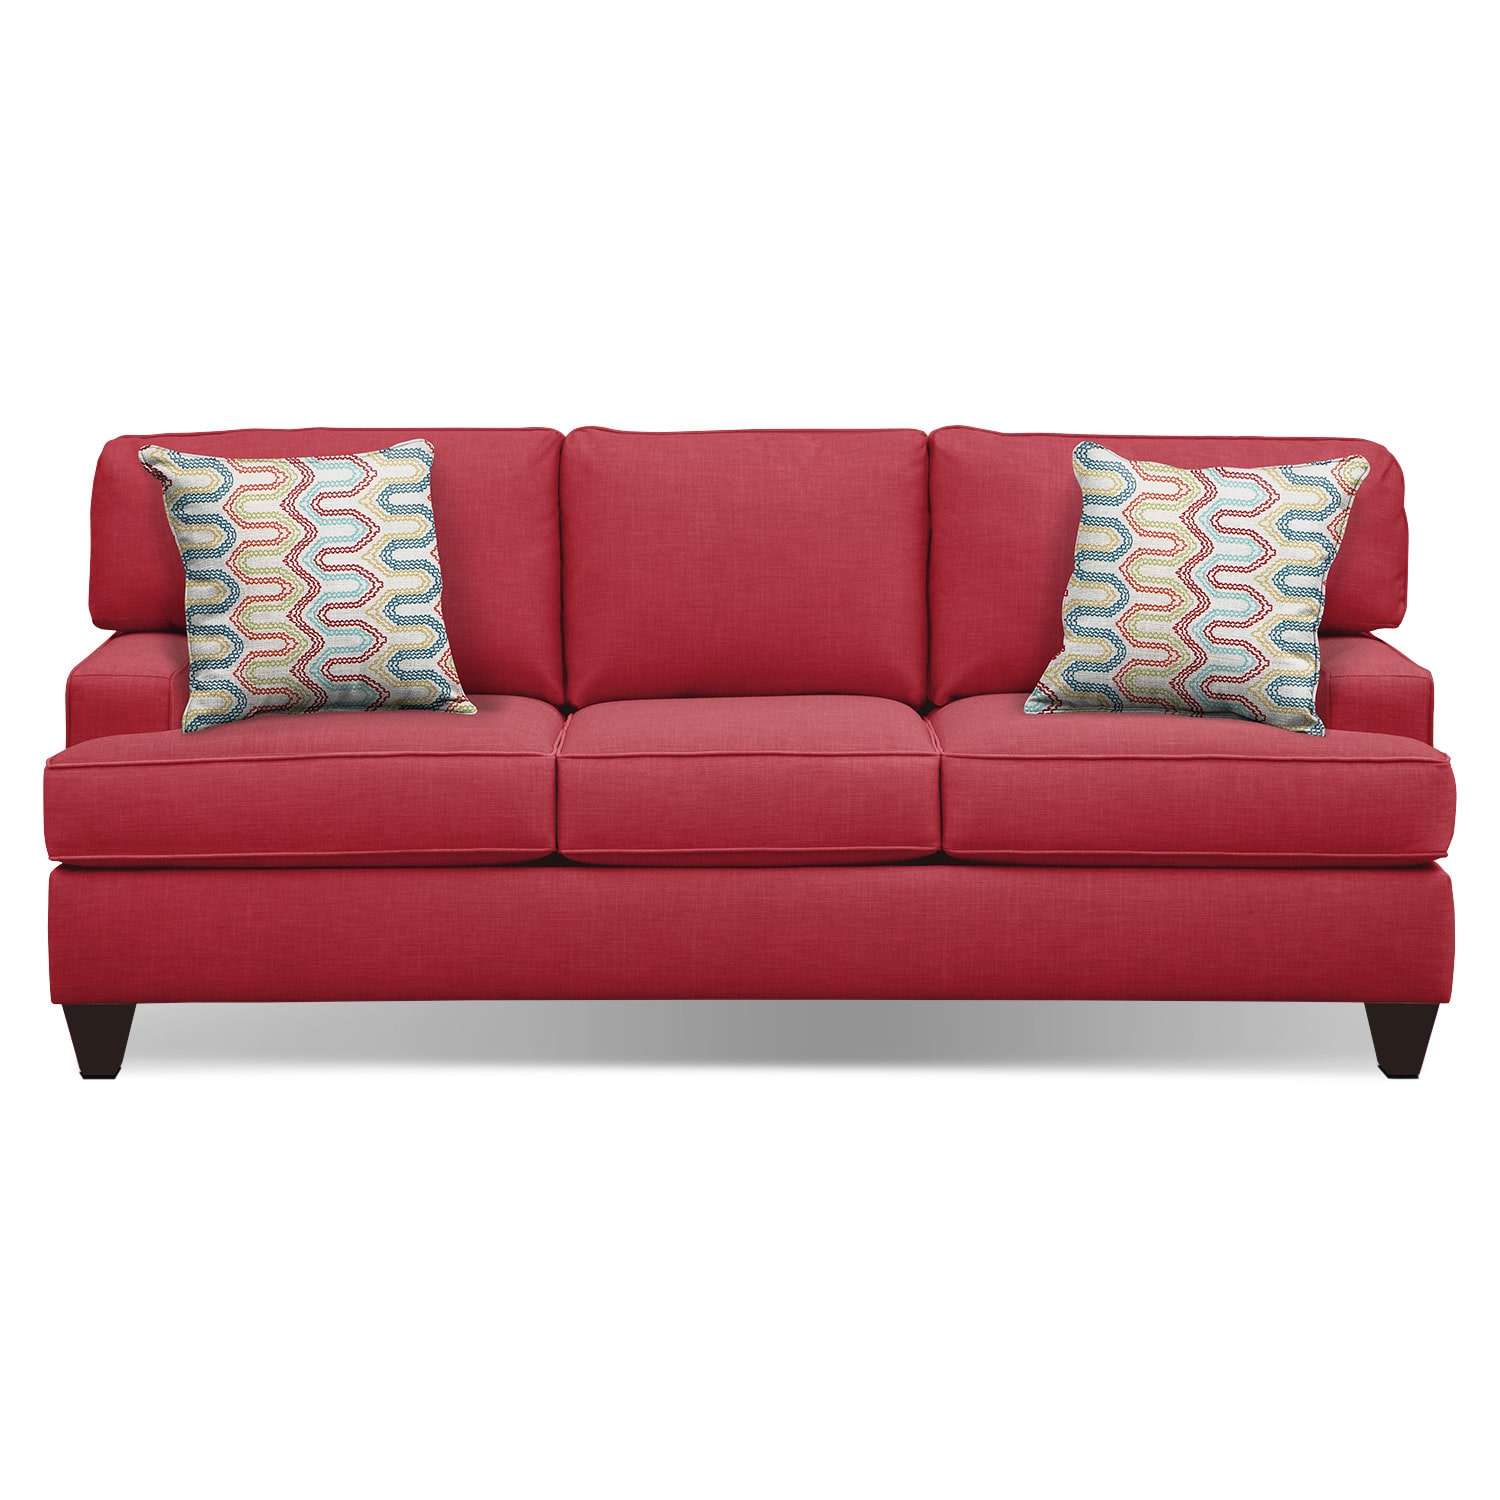 "Living Room Furniture - Conner Red 87"" Sofa"